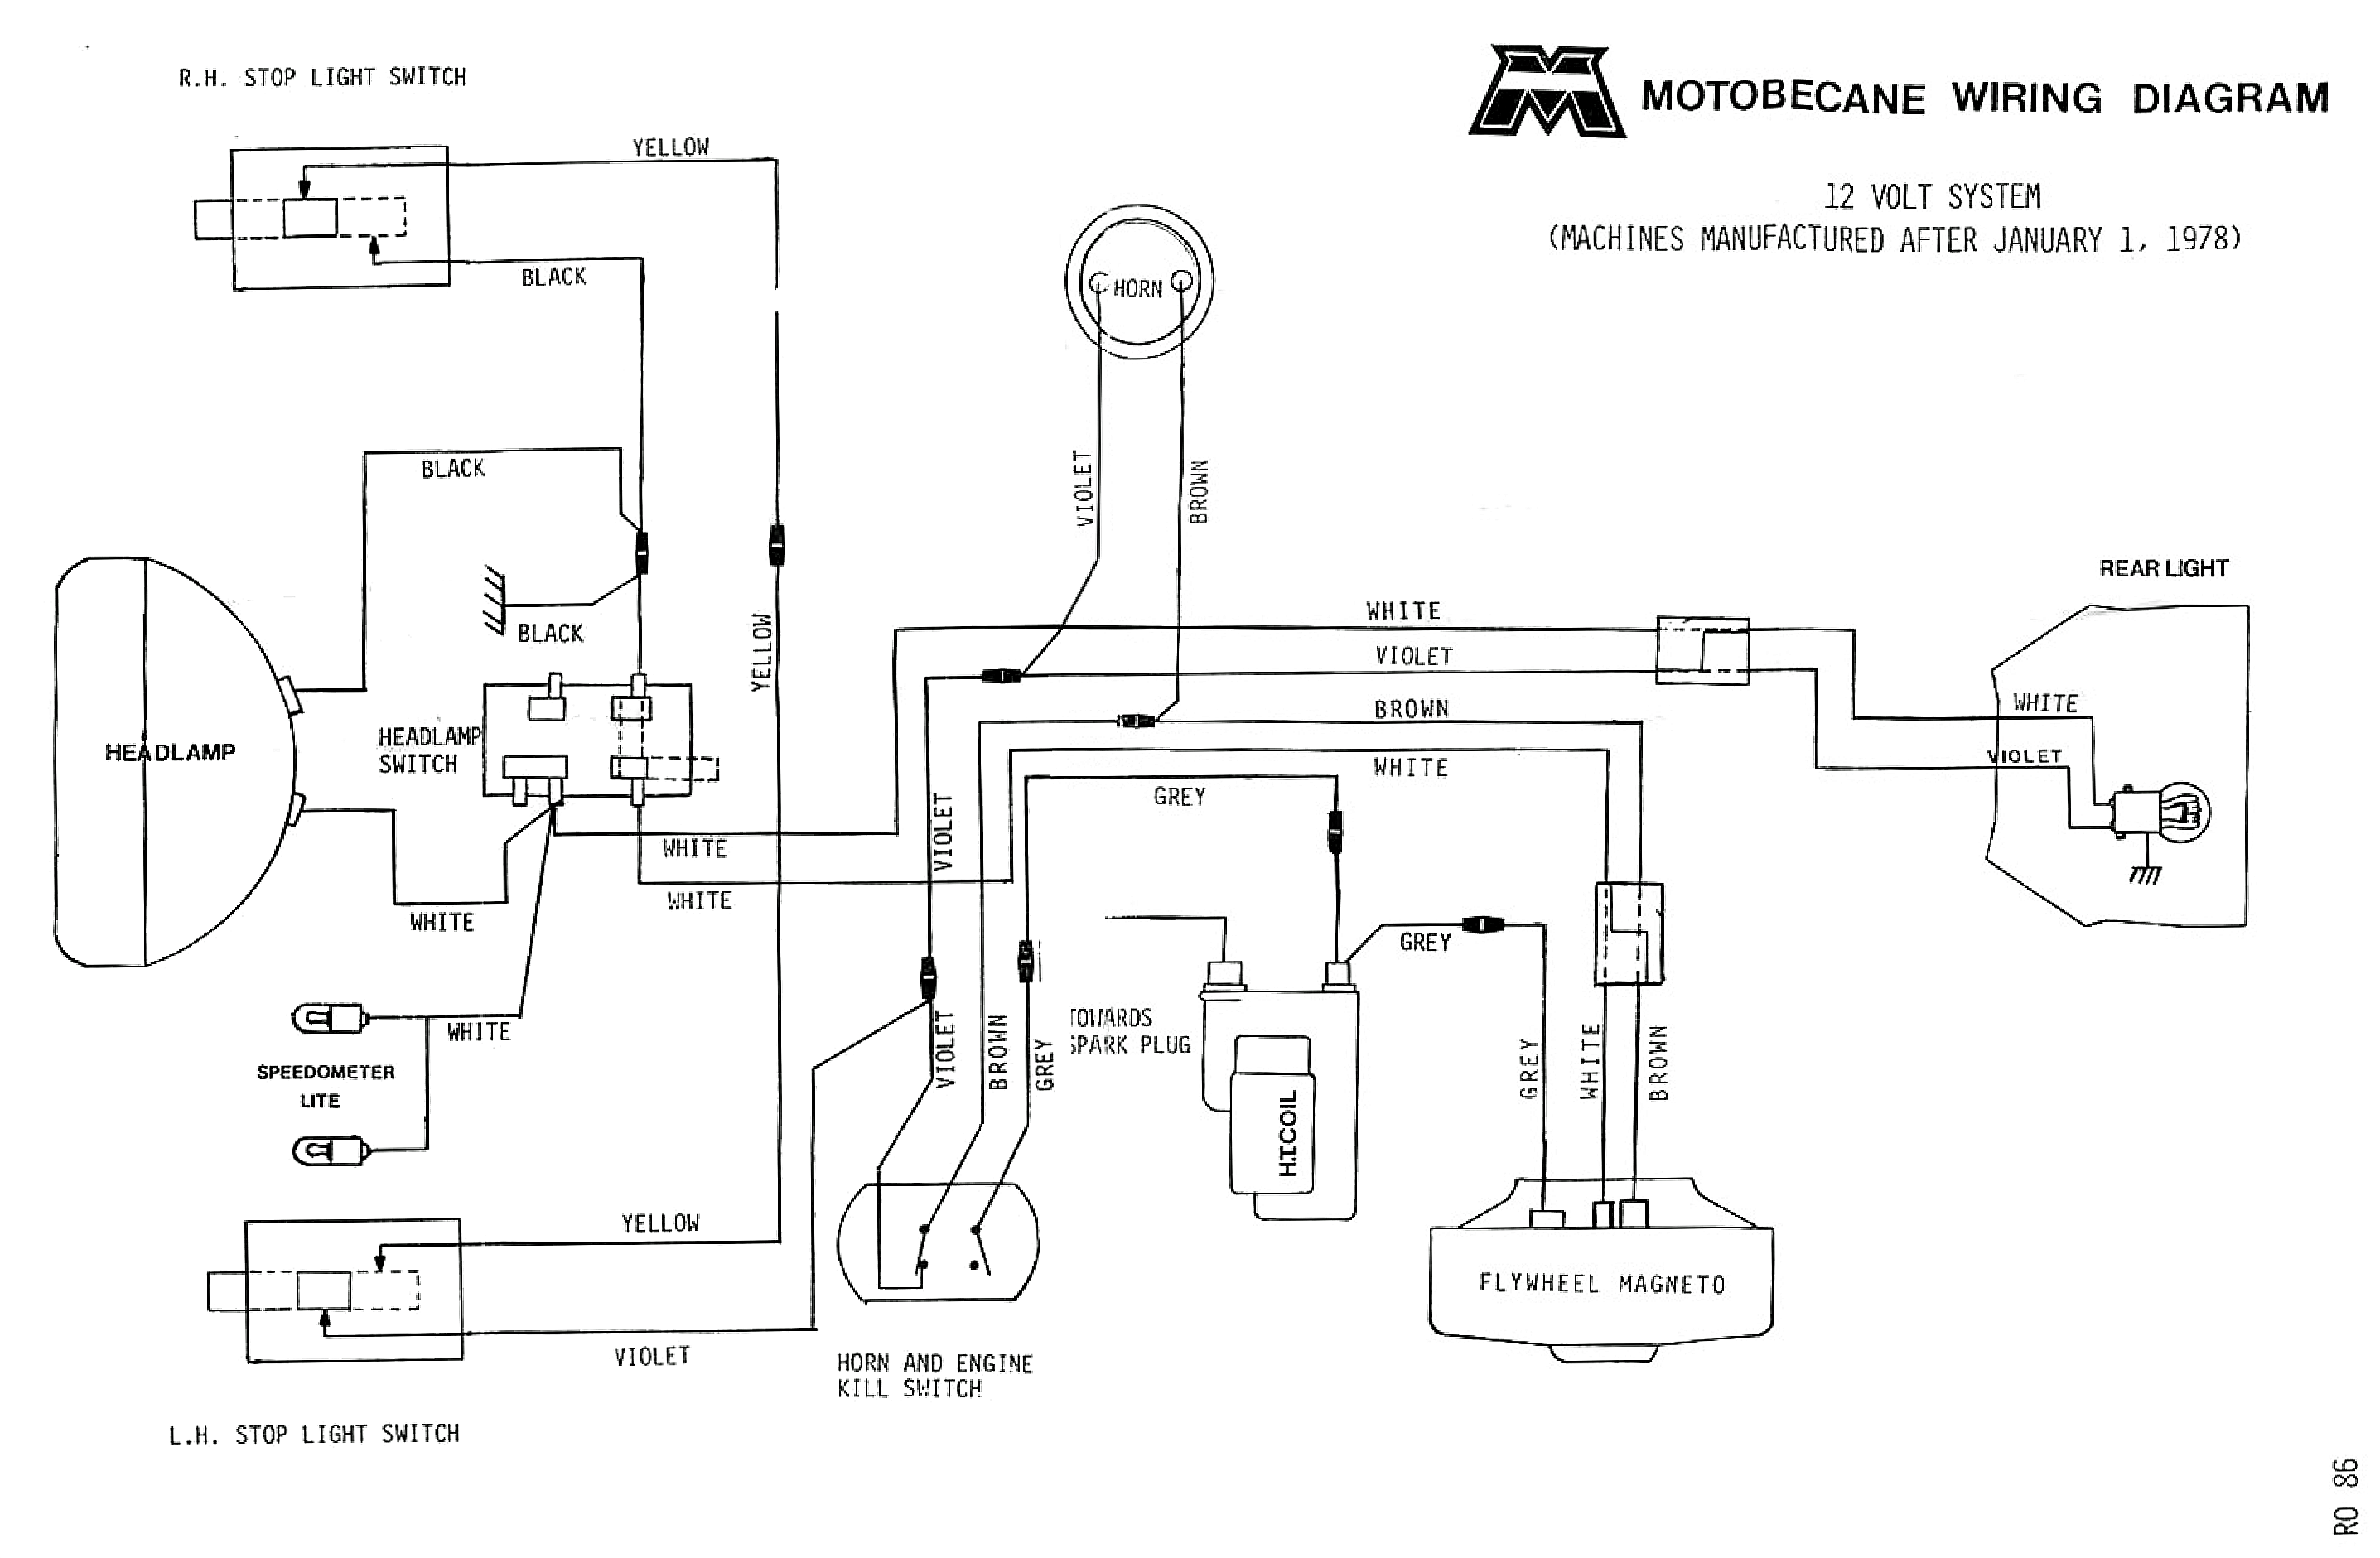 Motobecane Wiring Diagrams Mopedwiki Moby Pinterest Wire And Sunl Diagram Magneto Mopeds